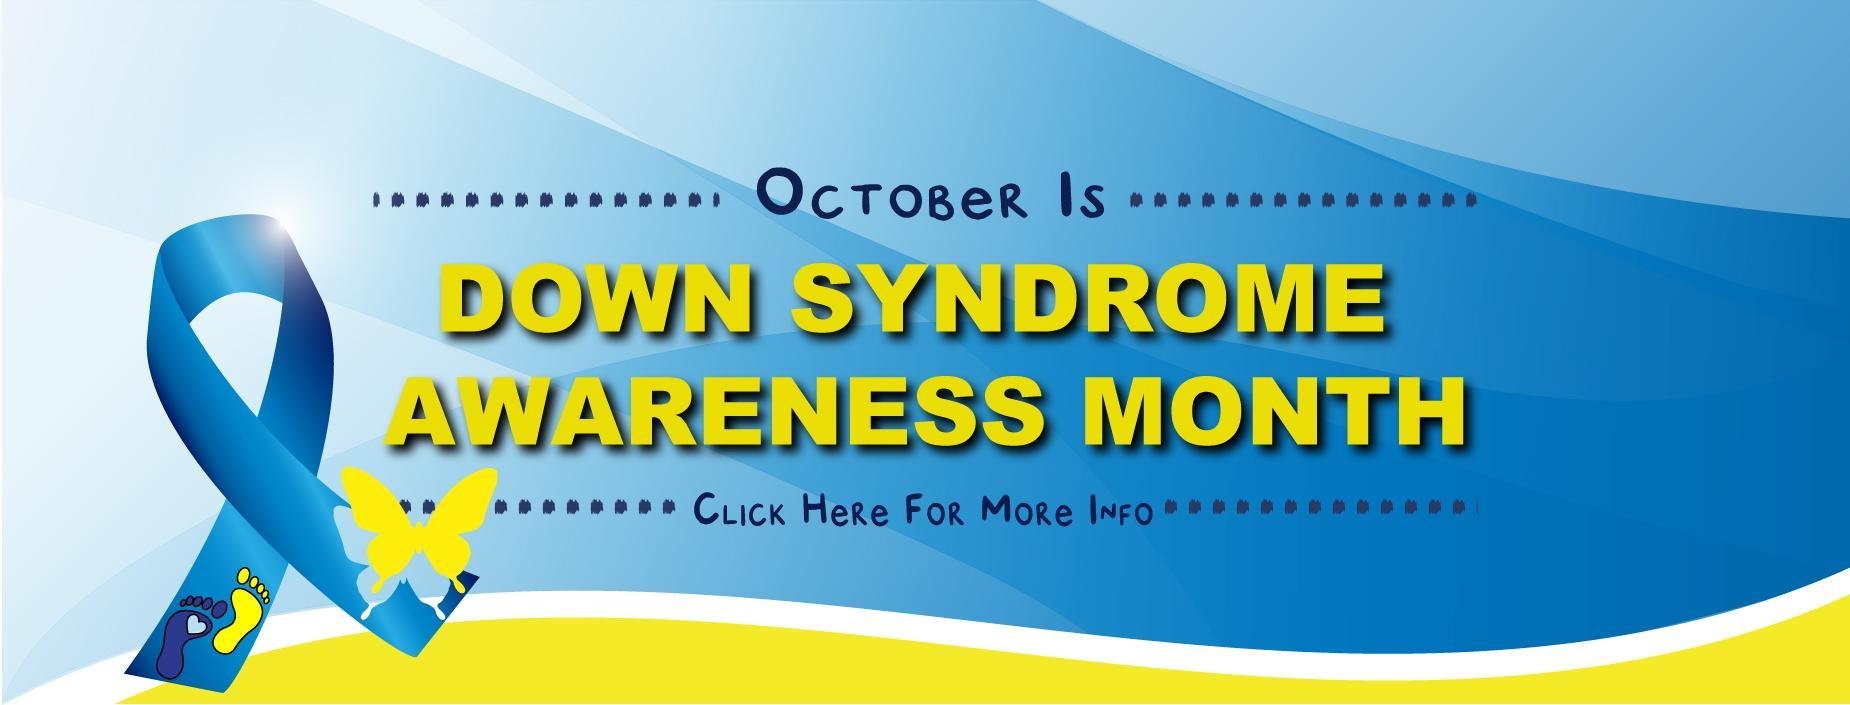 Down Syndrome Awareness Month Banner